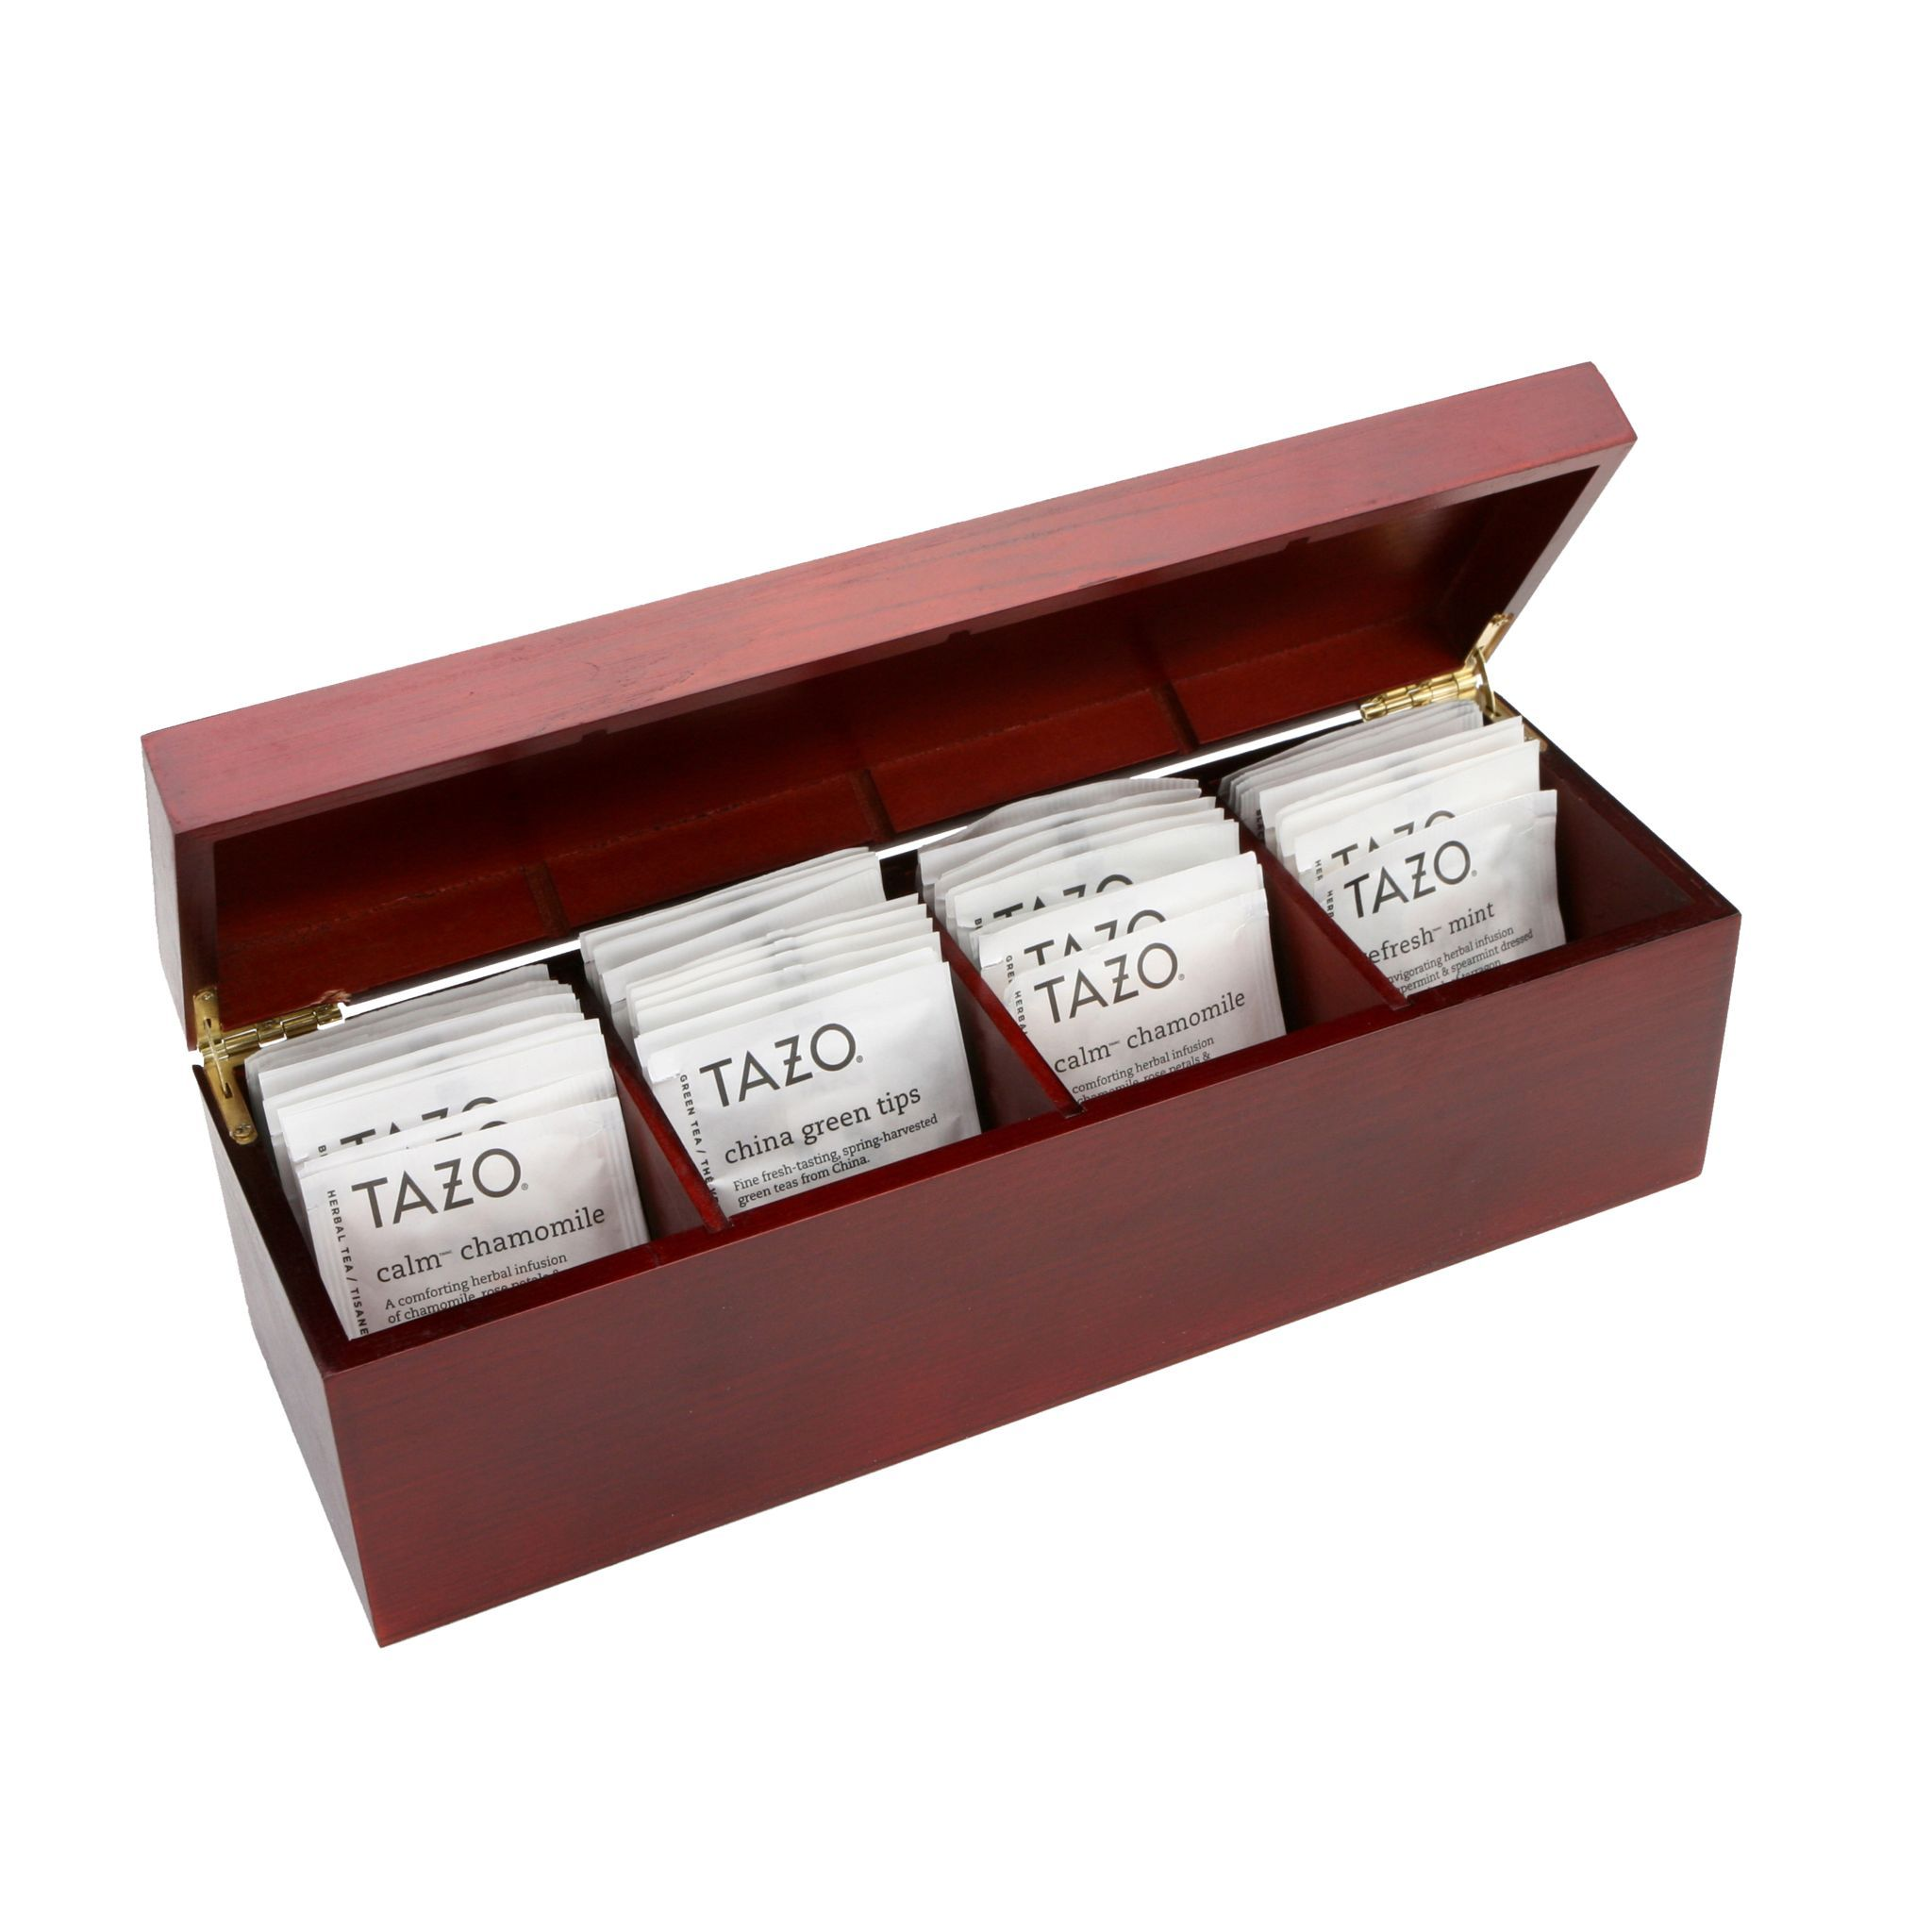 Burled Rosewood Tazo Tea Bundle - Includes 44 Tazo Tea Bags